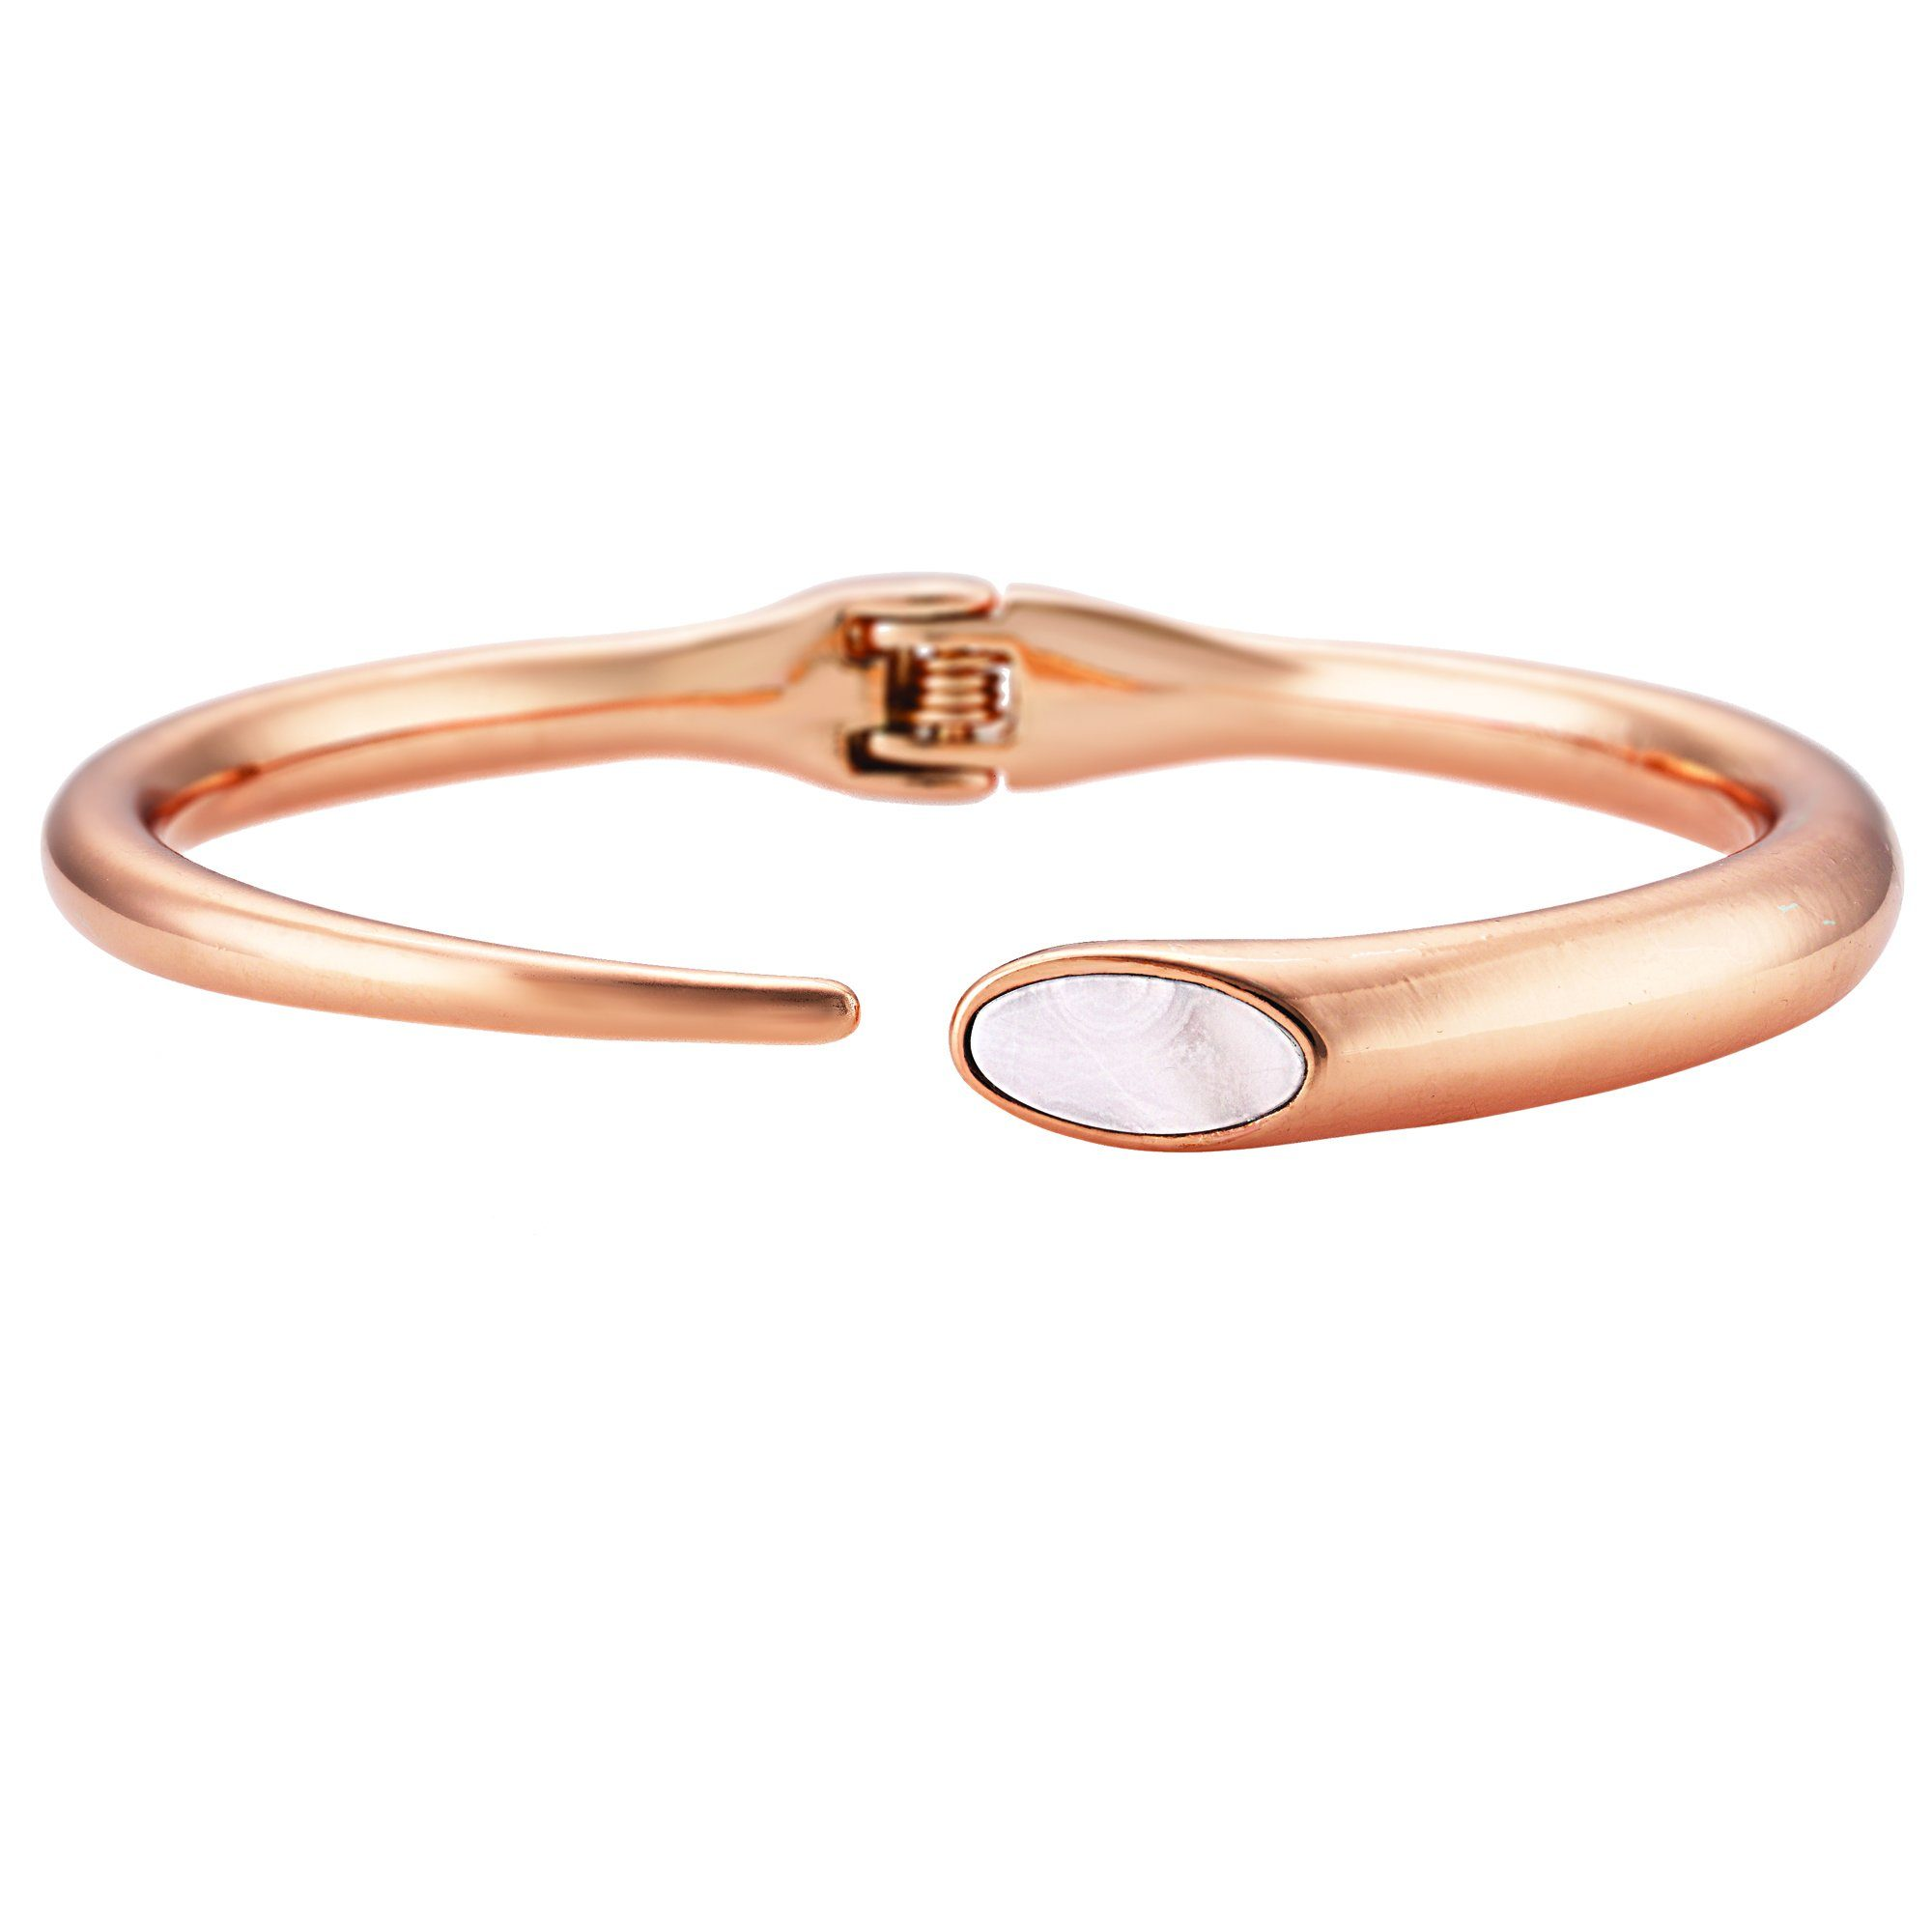 Buckley London Armschmuck Messing rosévergoldet mit Perlmutt